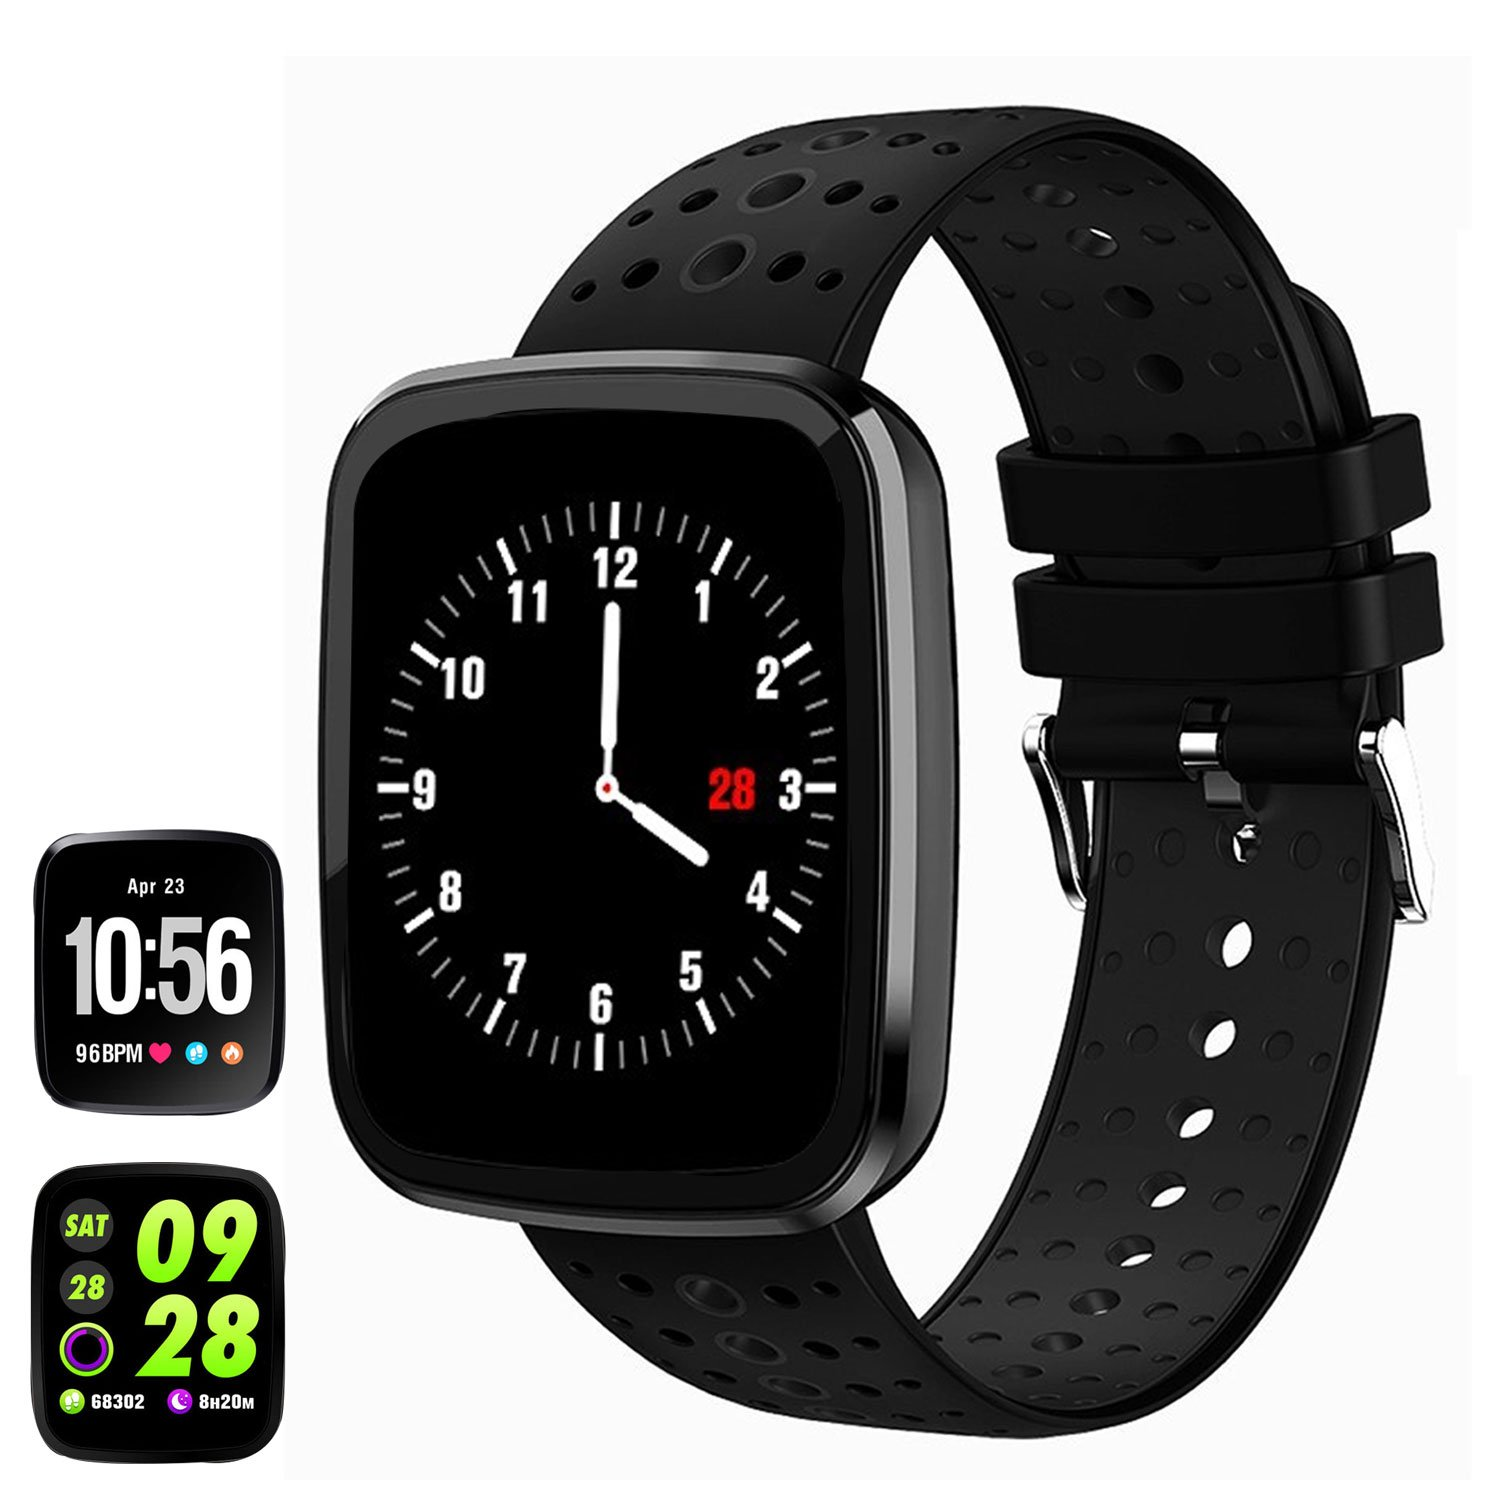 feifuns Fitness Tracker Watch, 1.3'' Color Touchscreen with Heart Rate Watch Blood Pressure Monitor, IP67 Waterproof, Step Counter Watch, Pedometer, Sleep Monitor, Smart Watch for Women Men Kids